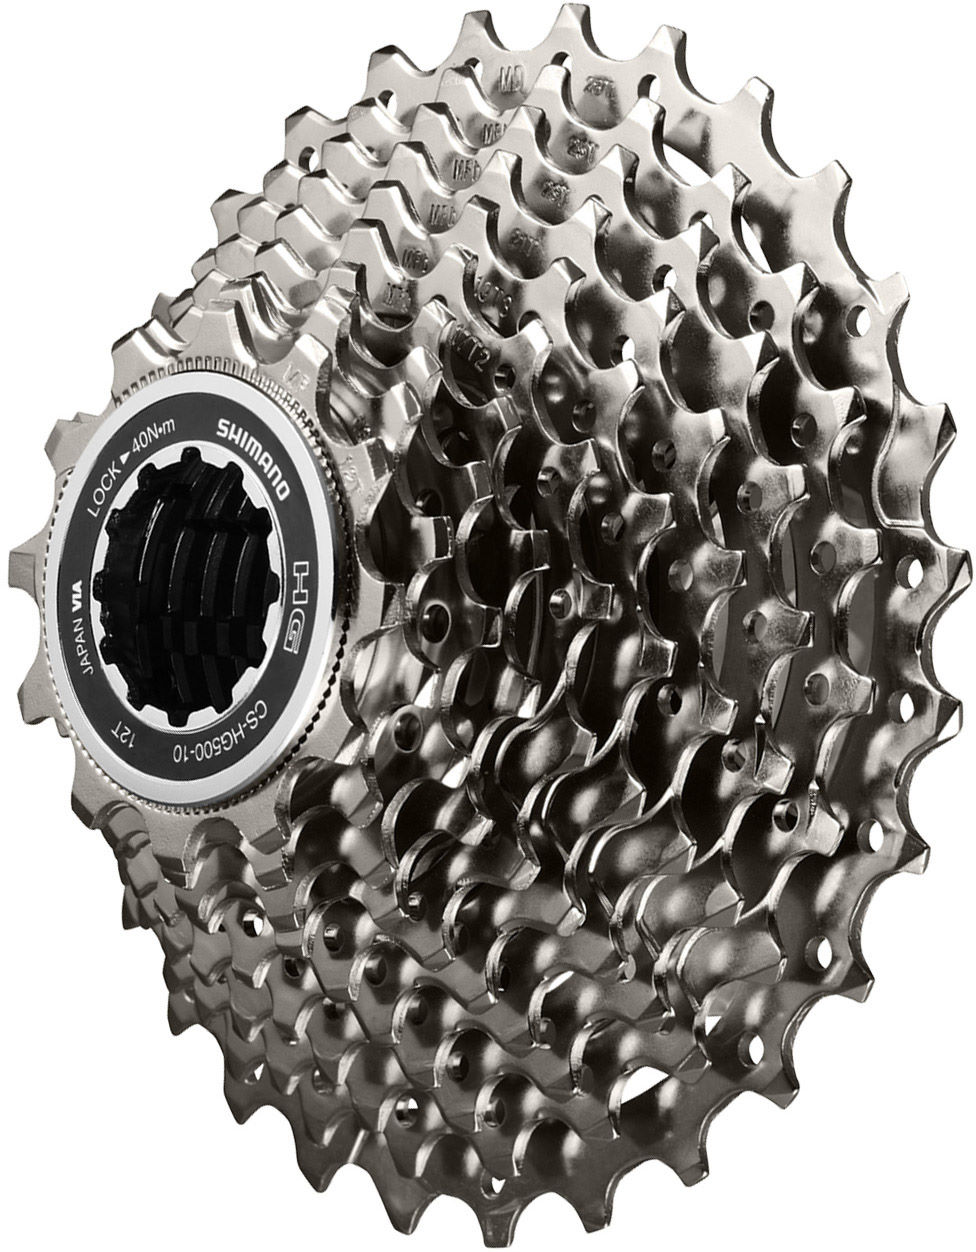 NEW silver Shimano 1.85mm Spacer for 10spd cassettes on 11spd freehub